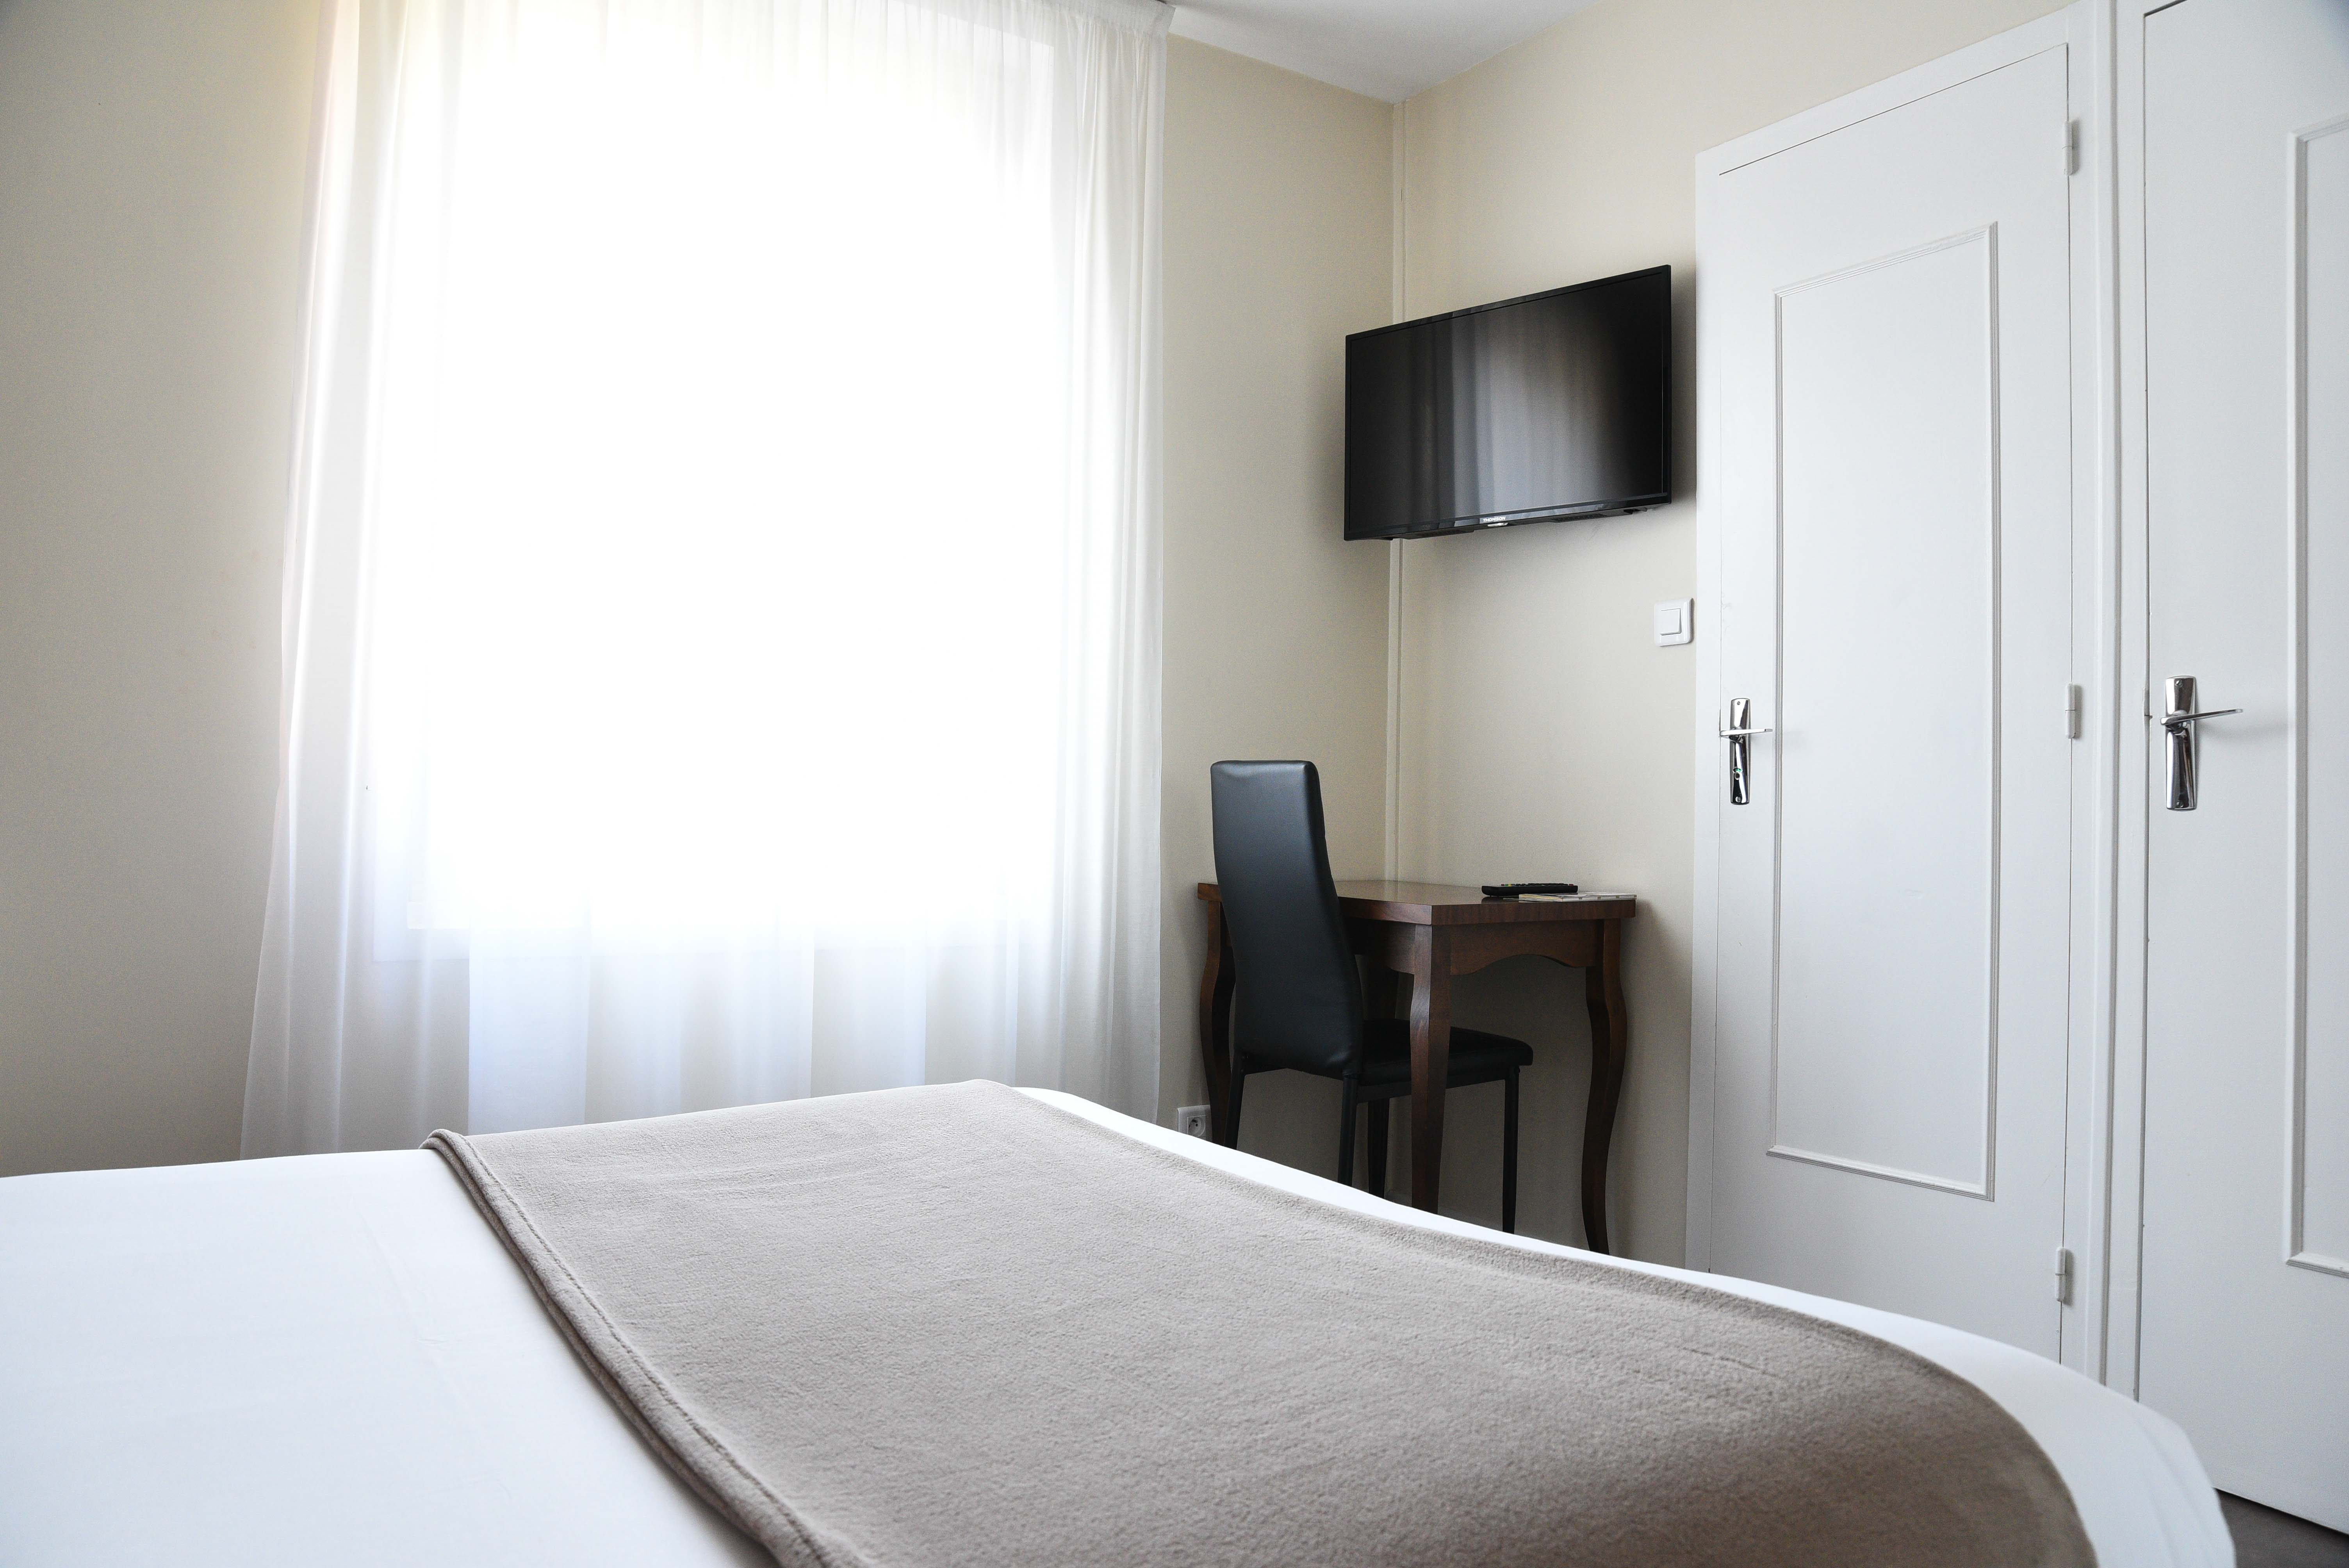 tv-chambre-hotel-cholet